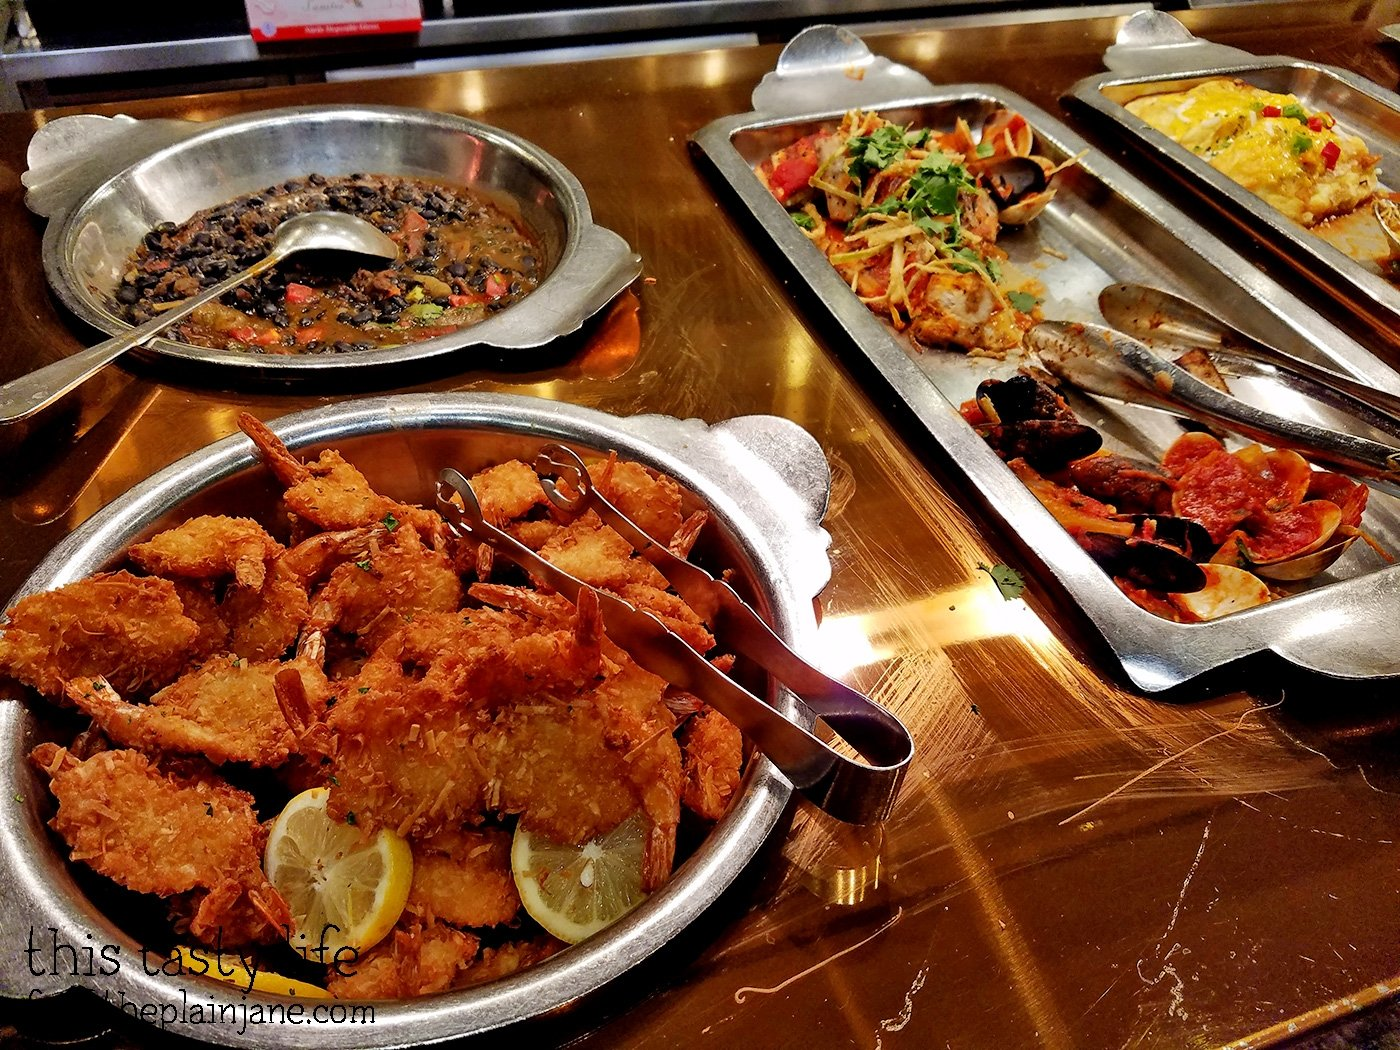 Luxury Harbor Seafood Buffet Garden Grove Ca Images - Brown Nature ...